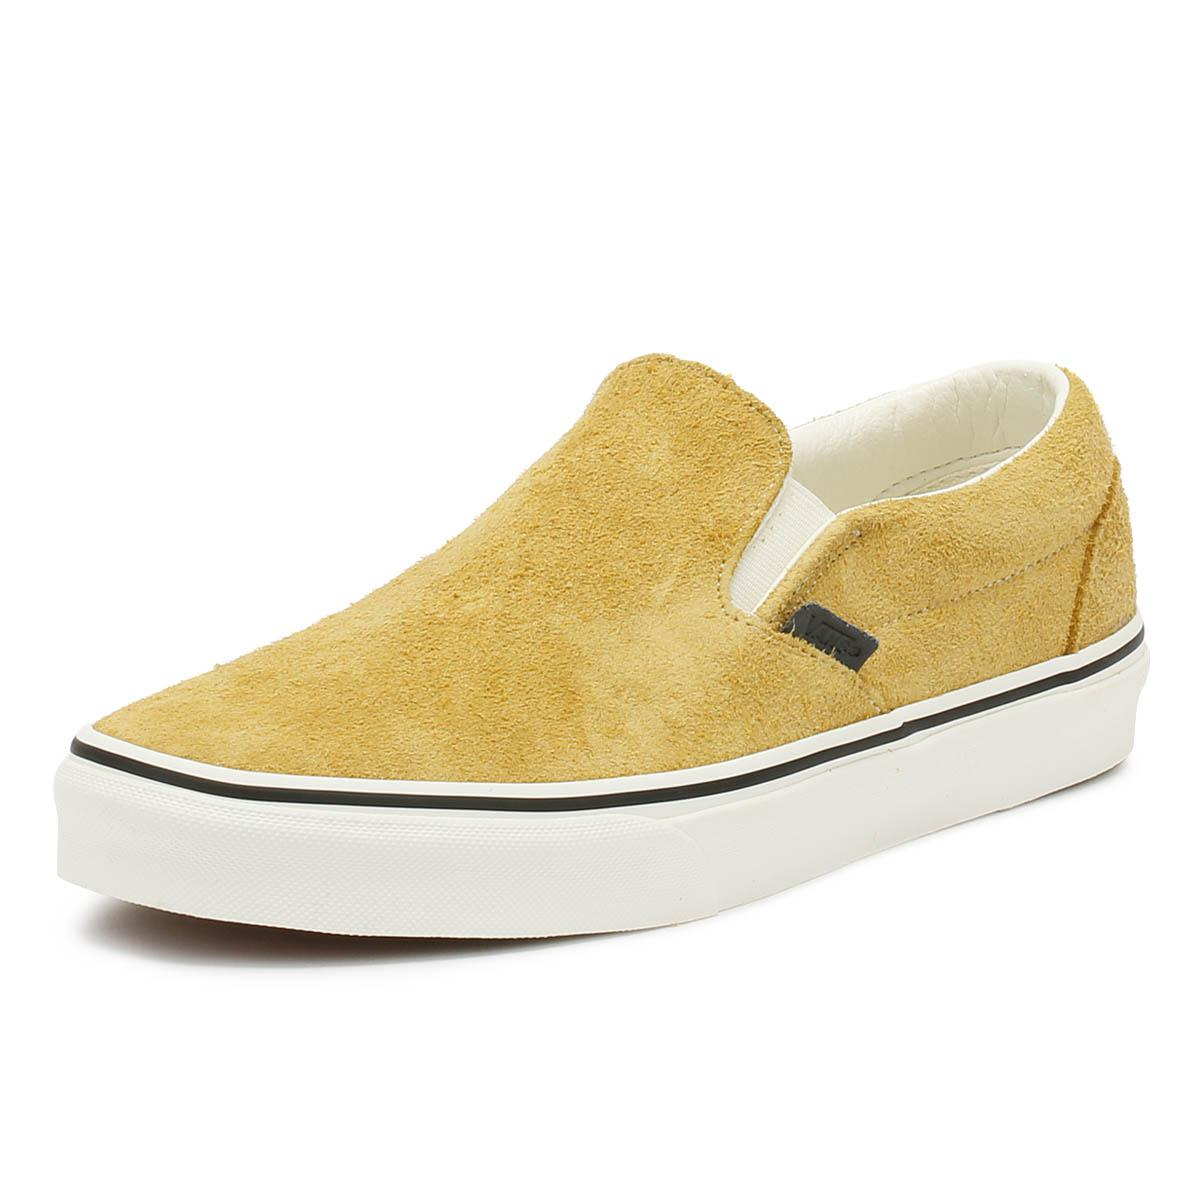 8190192b06f07a Vans - Natural Classic Slip On Hairy Suede Mens Sunflower Beige Trainers  for Men - Lyst. View fullscreen